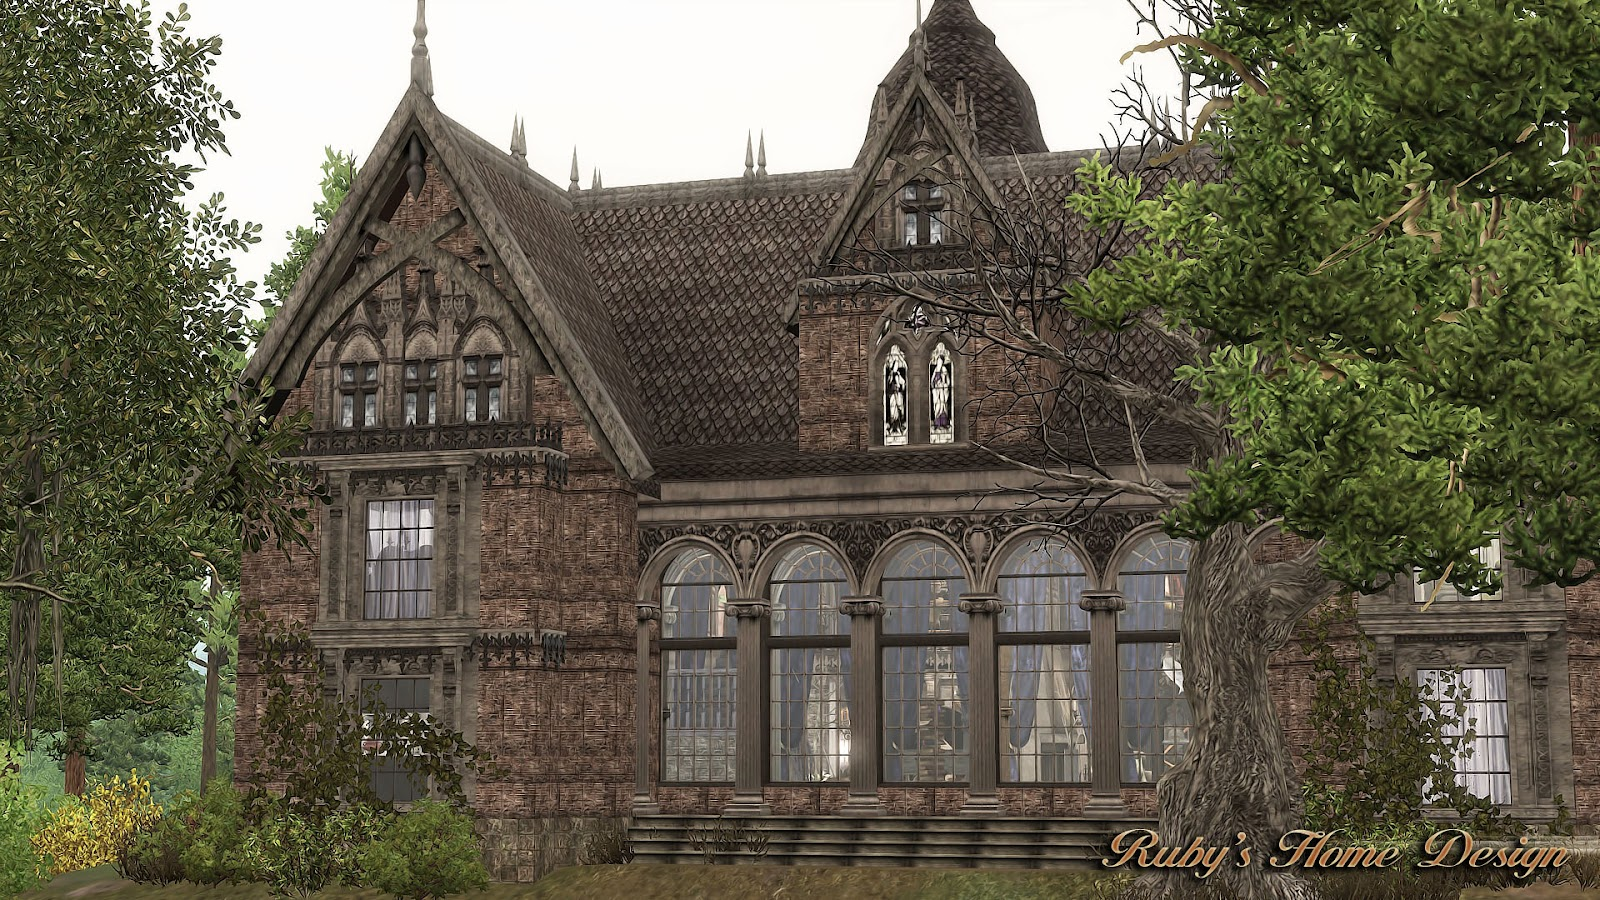 Sims3 The Gothic Mansion 哥德古宅 - Ruby's Home Design